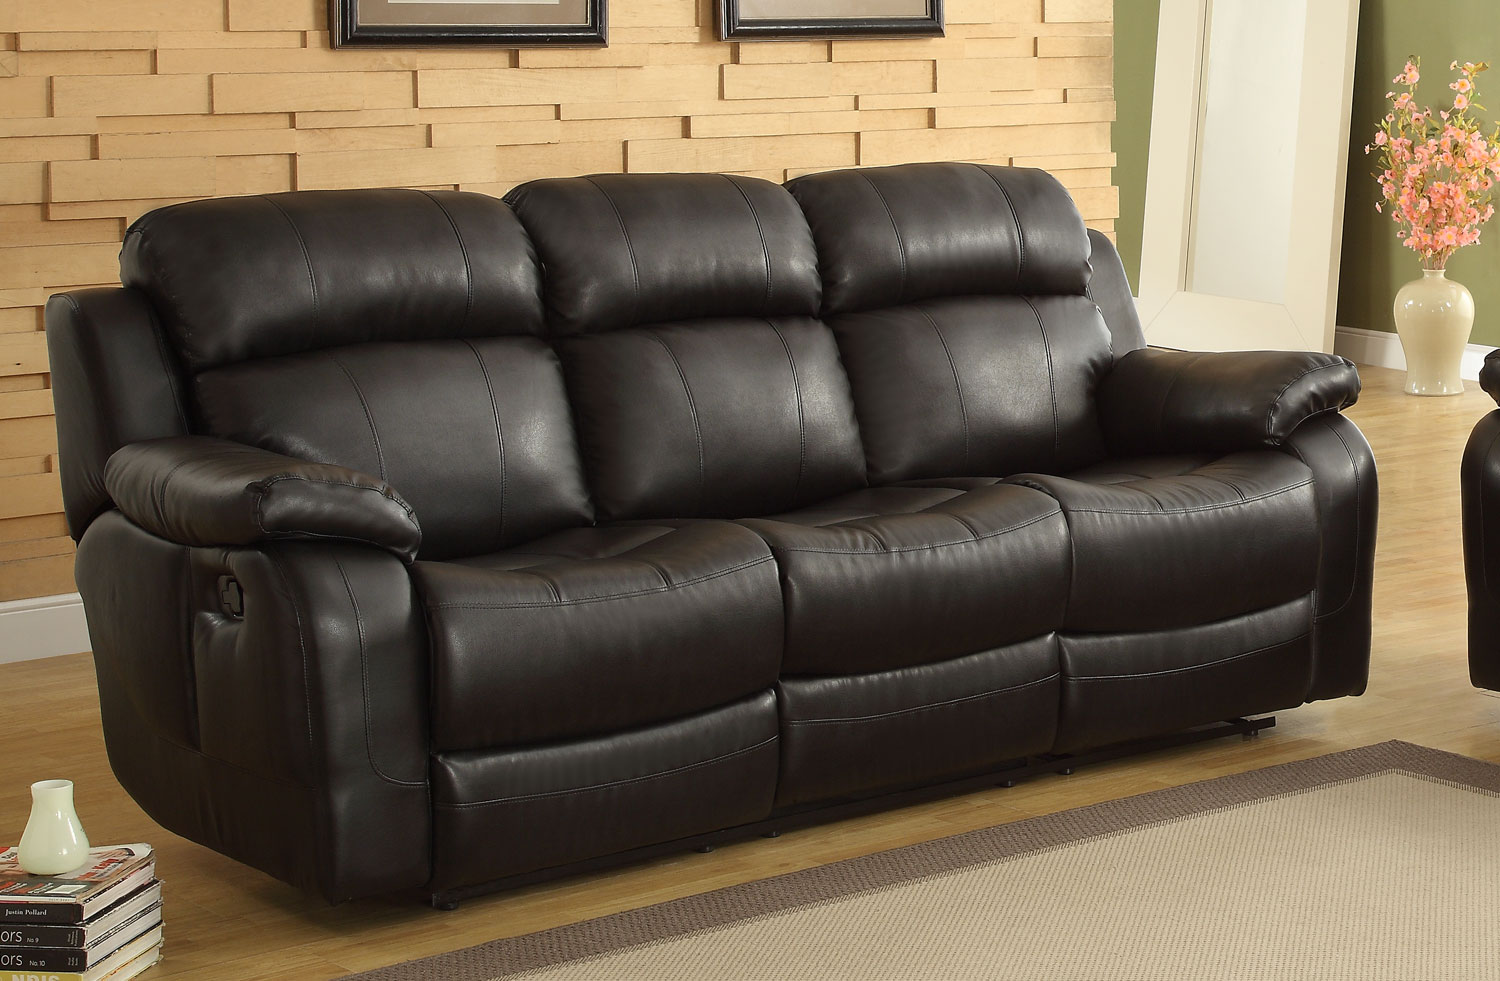 Homelegance Marille Recliner Sofa With Drop Center Cup Holder Black Bonded Leather Match